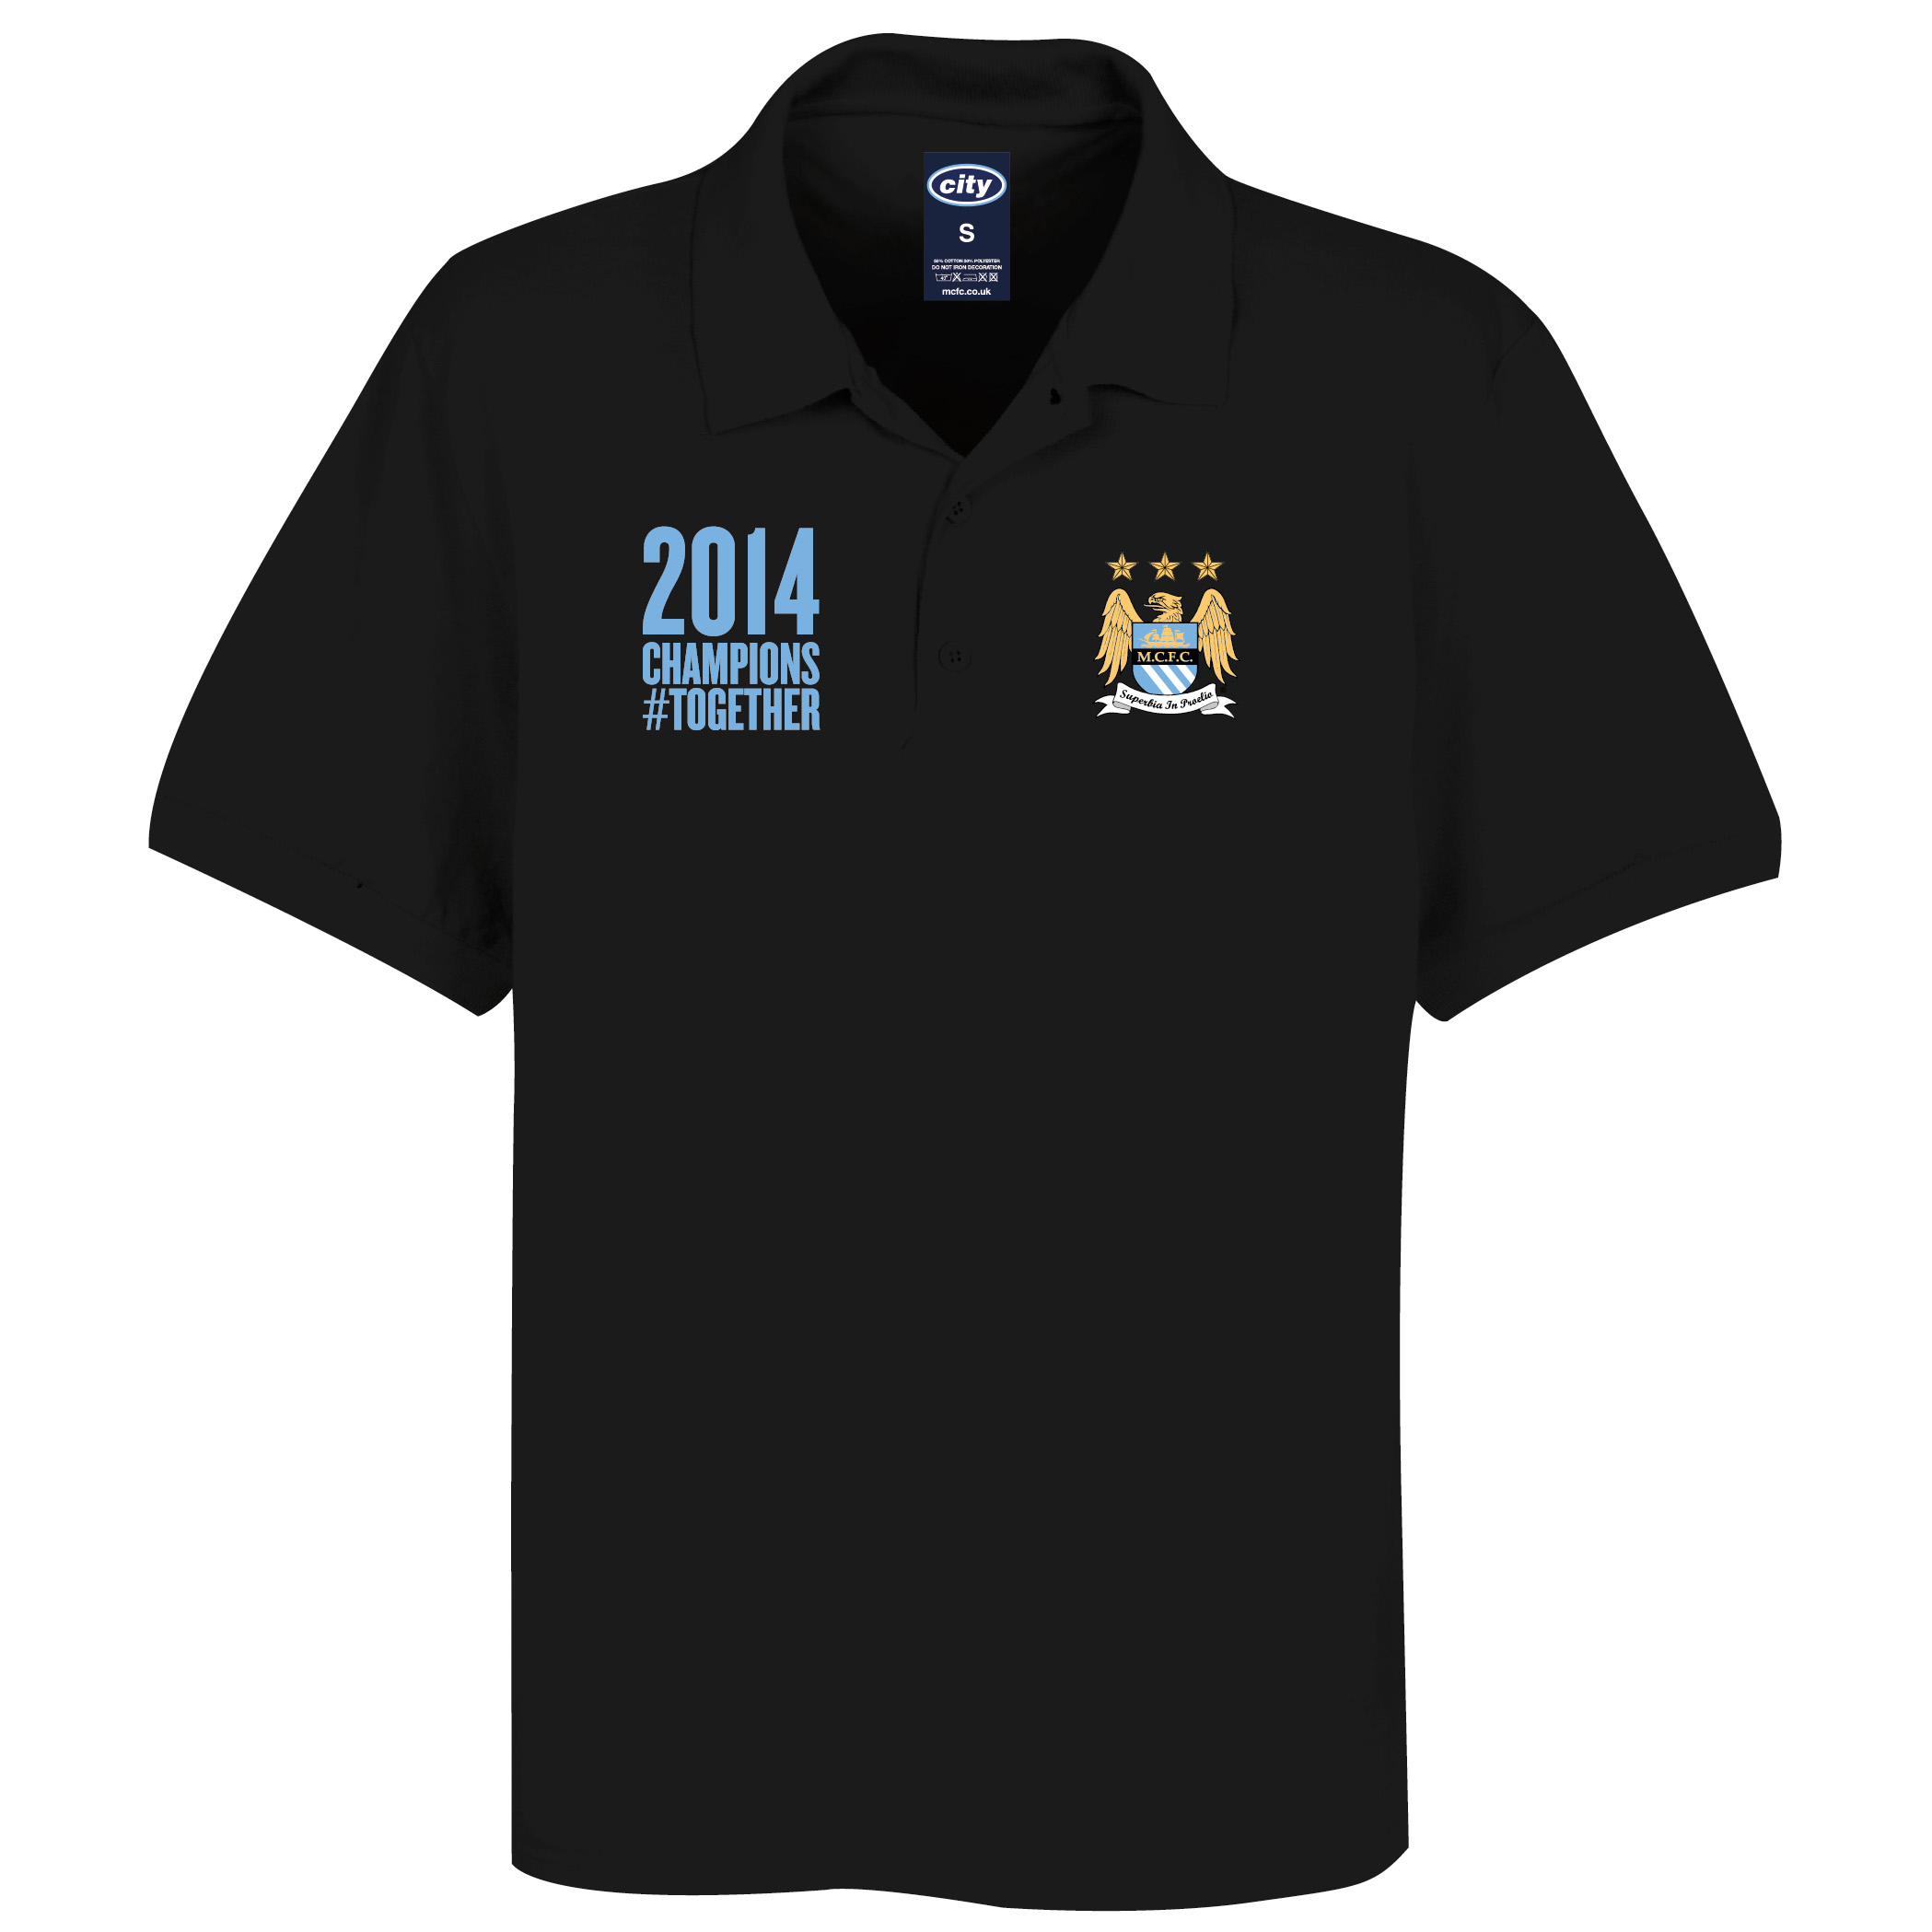 Manchester City 2013/14 Premier league Winners Polo Shirt- Black - Mens